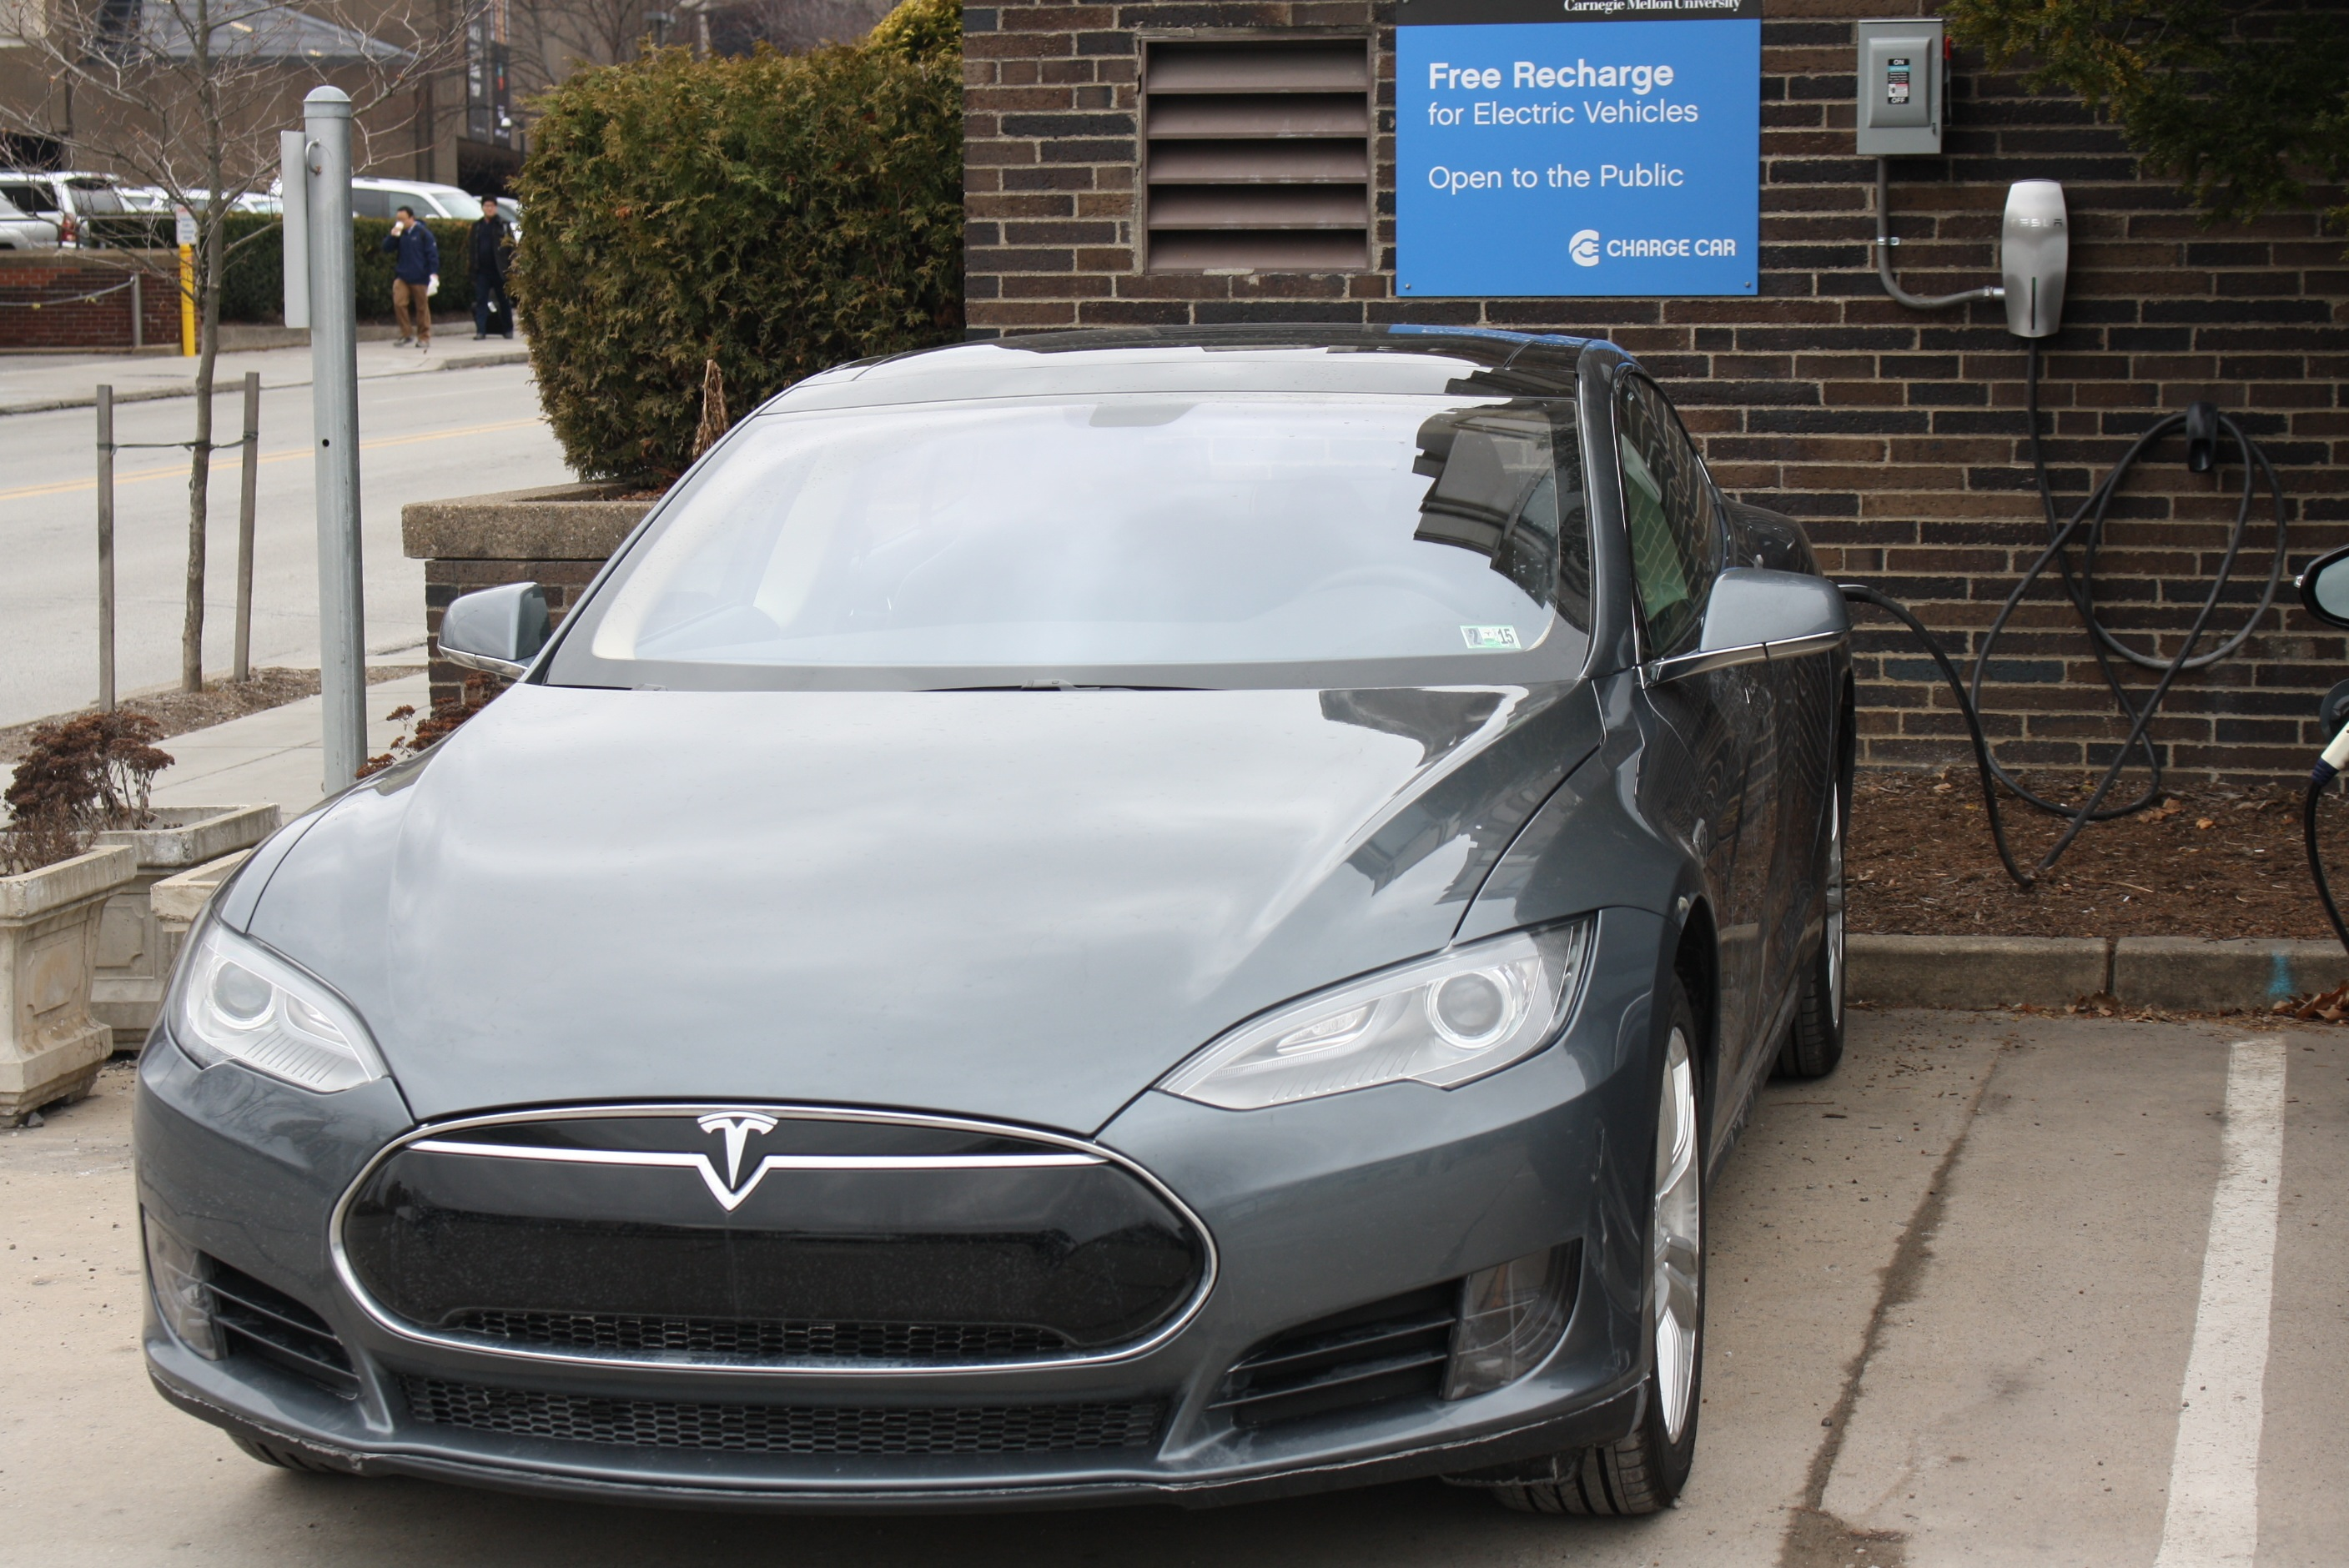 Carnegie Mellons Electric Garage Adds Tesla HighPower